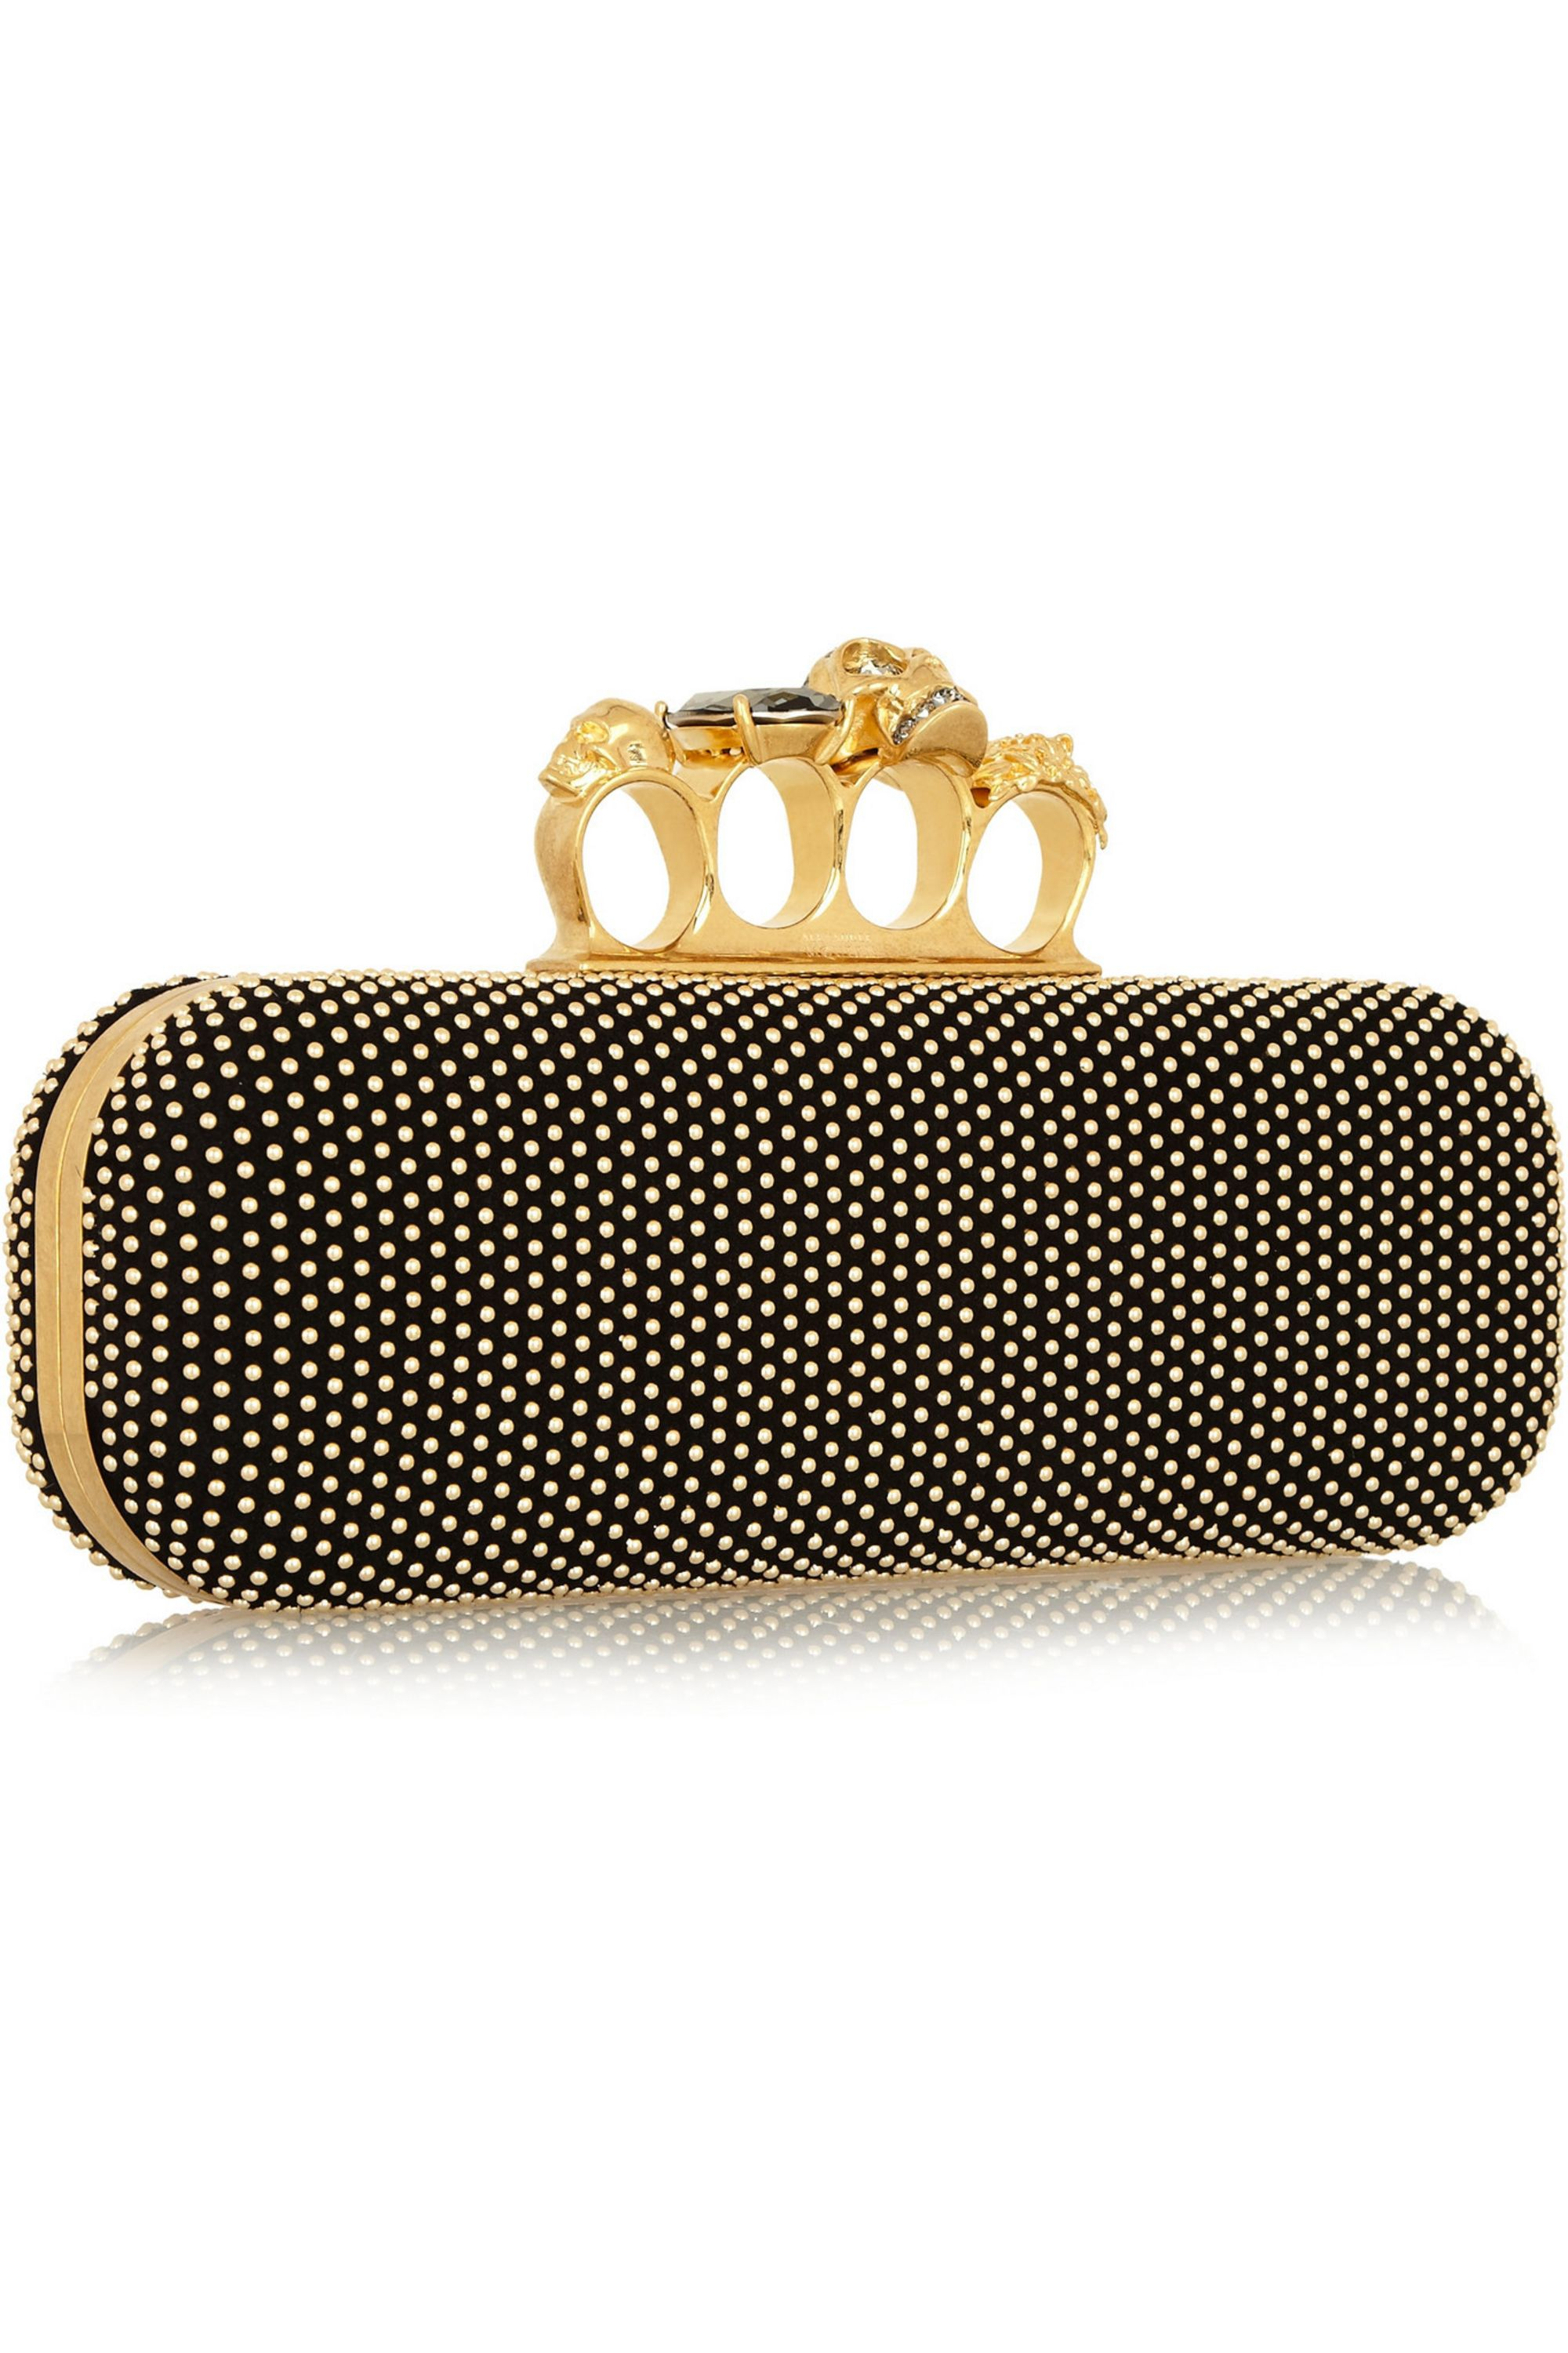 Alexander McQueen Knuckle studded leather box clutch